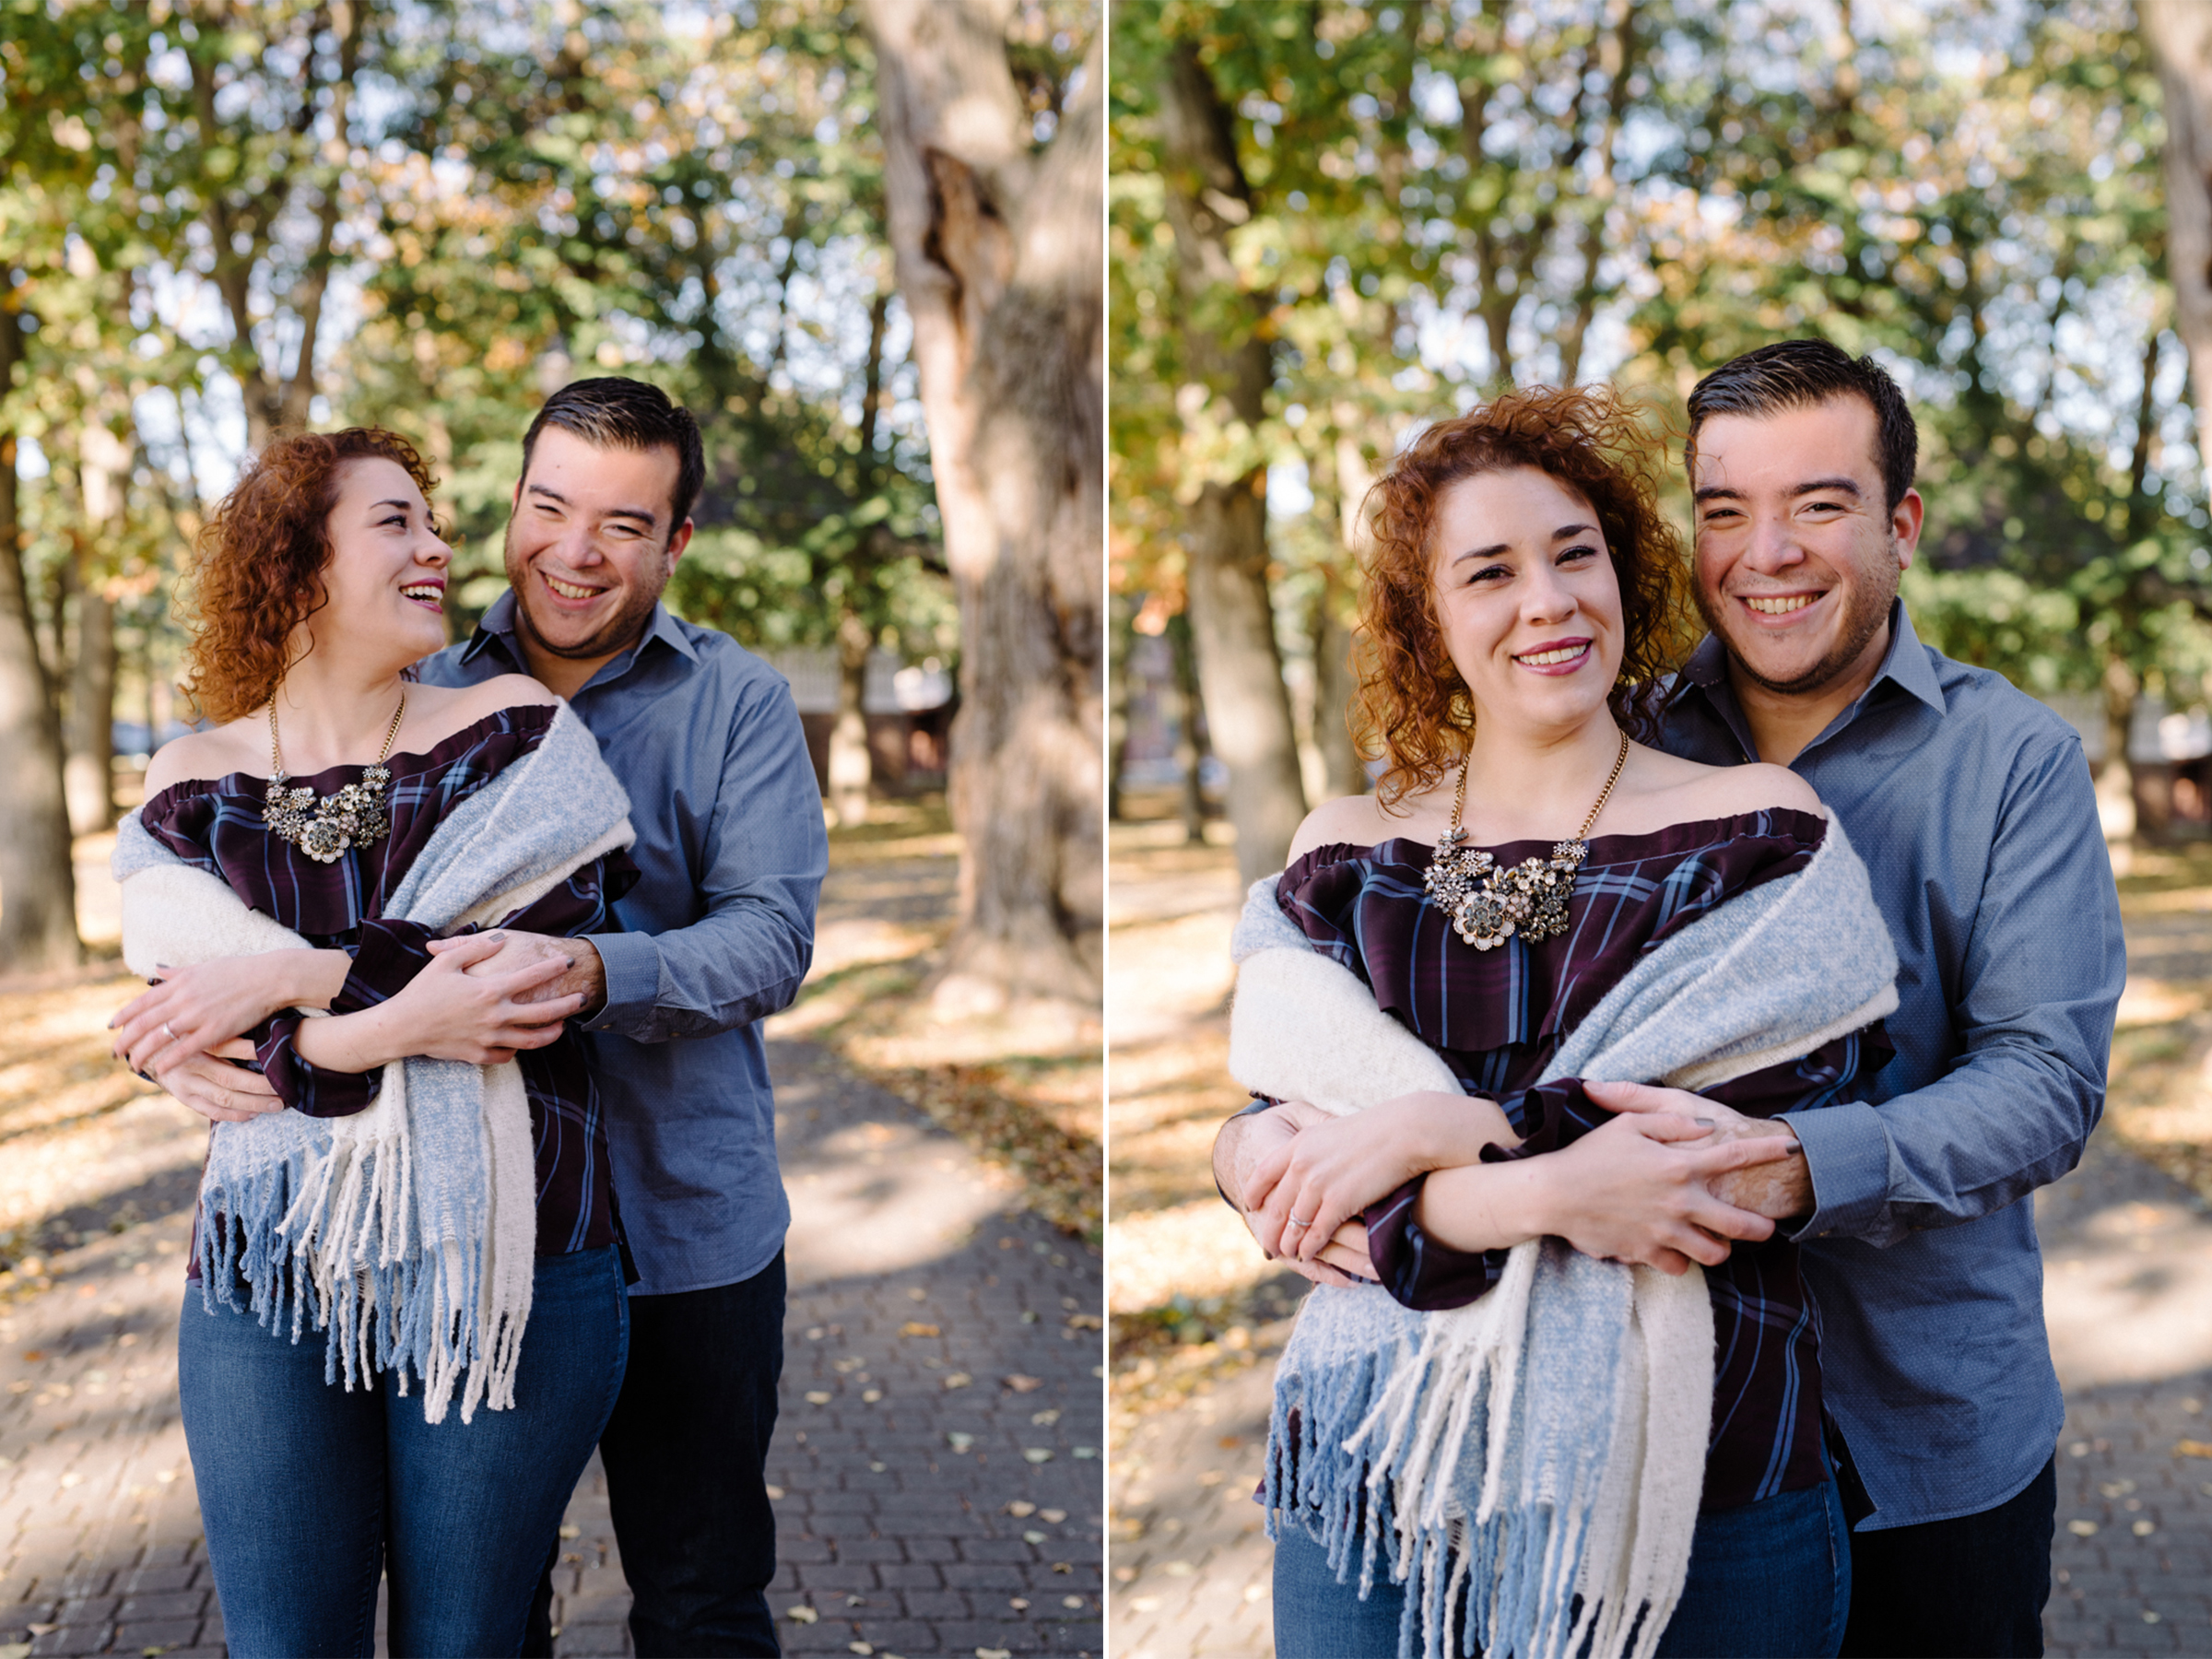 Melissa+Kenny- Watsessing Park Fall Engagement Session-Portraits- Bloomfield New Jersey- Olivia Christina Photo.JPG